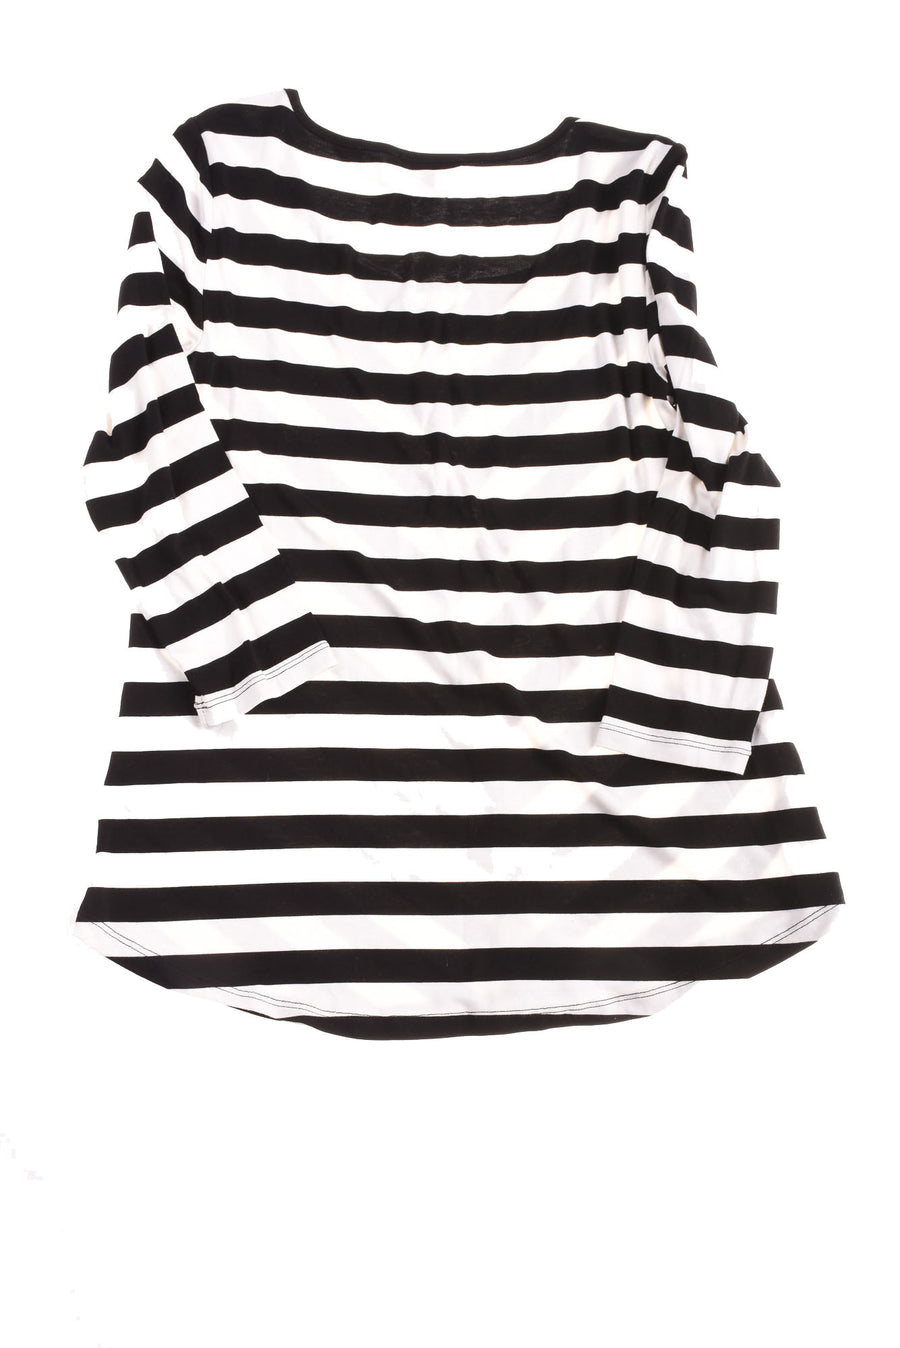 USED Cable & Gauge Women's Top Small Black & White